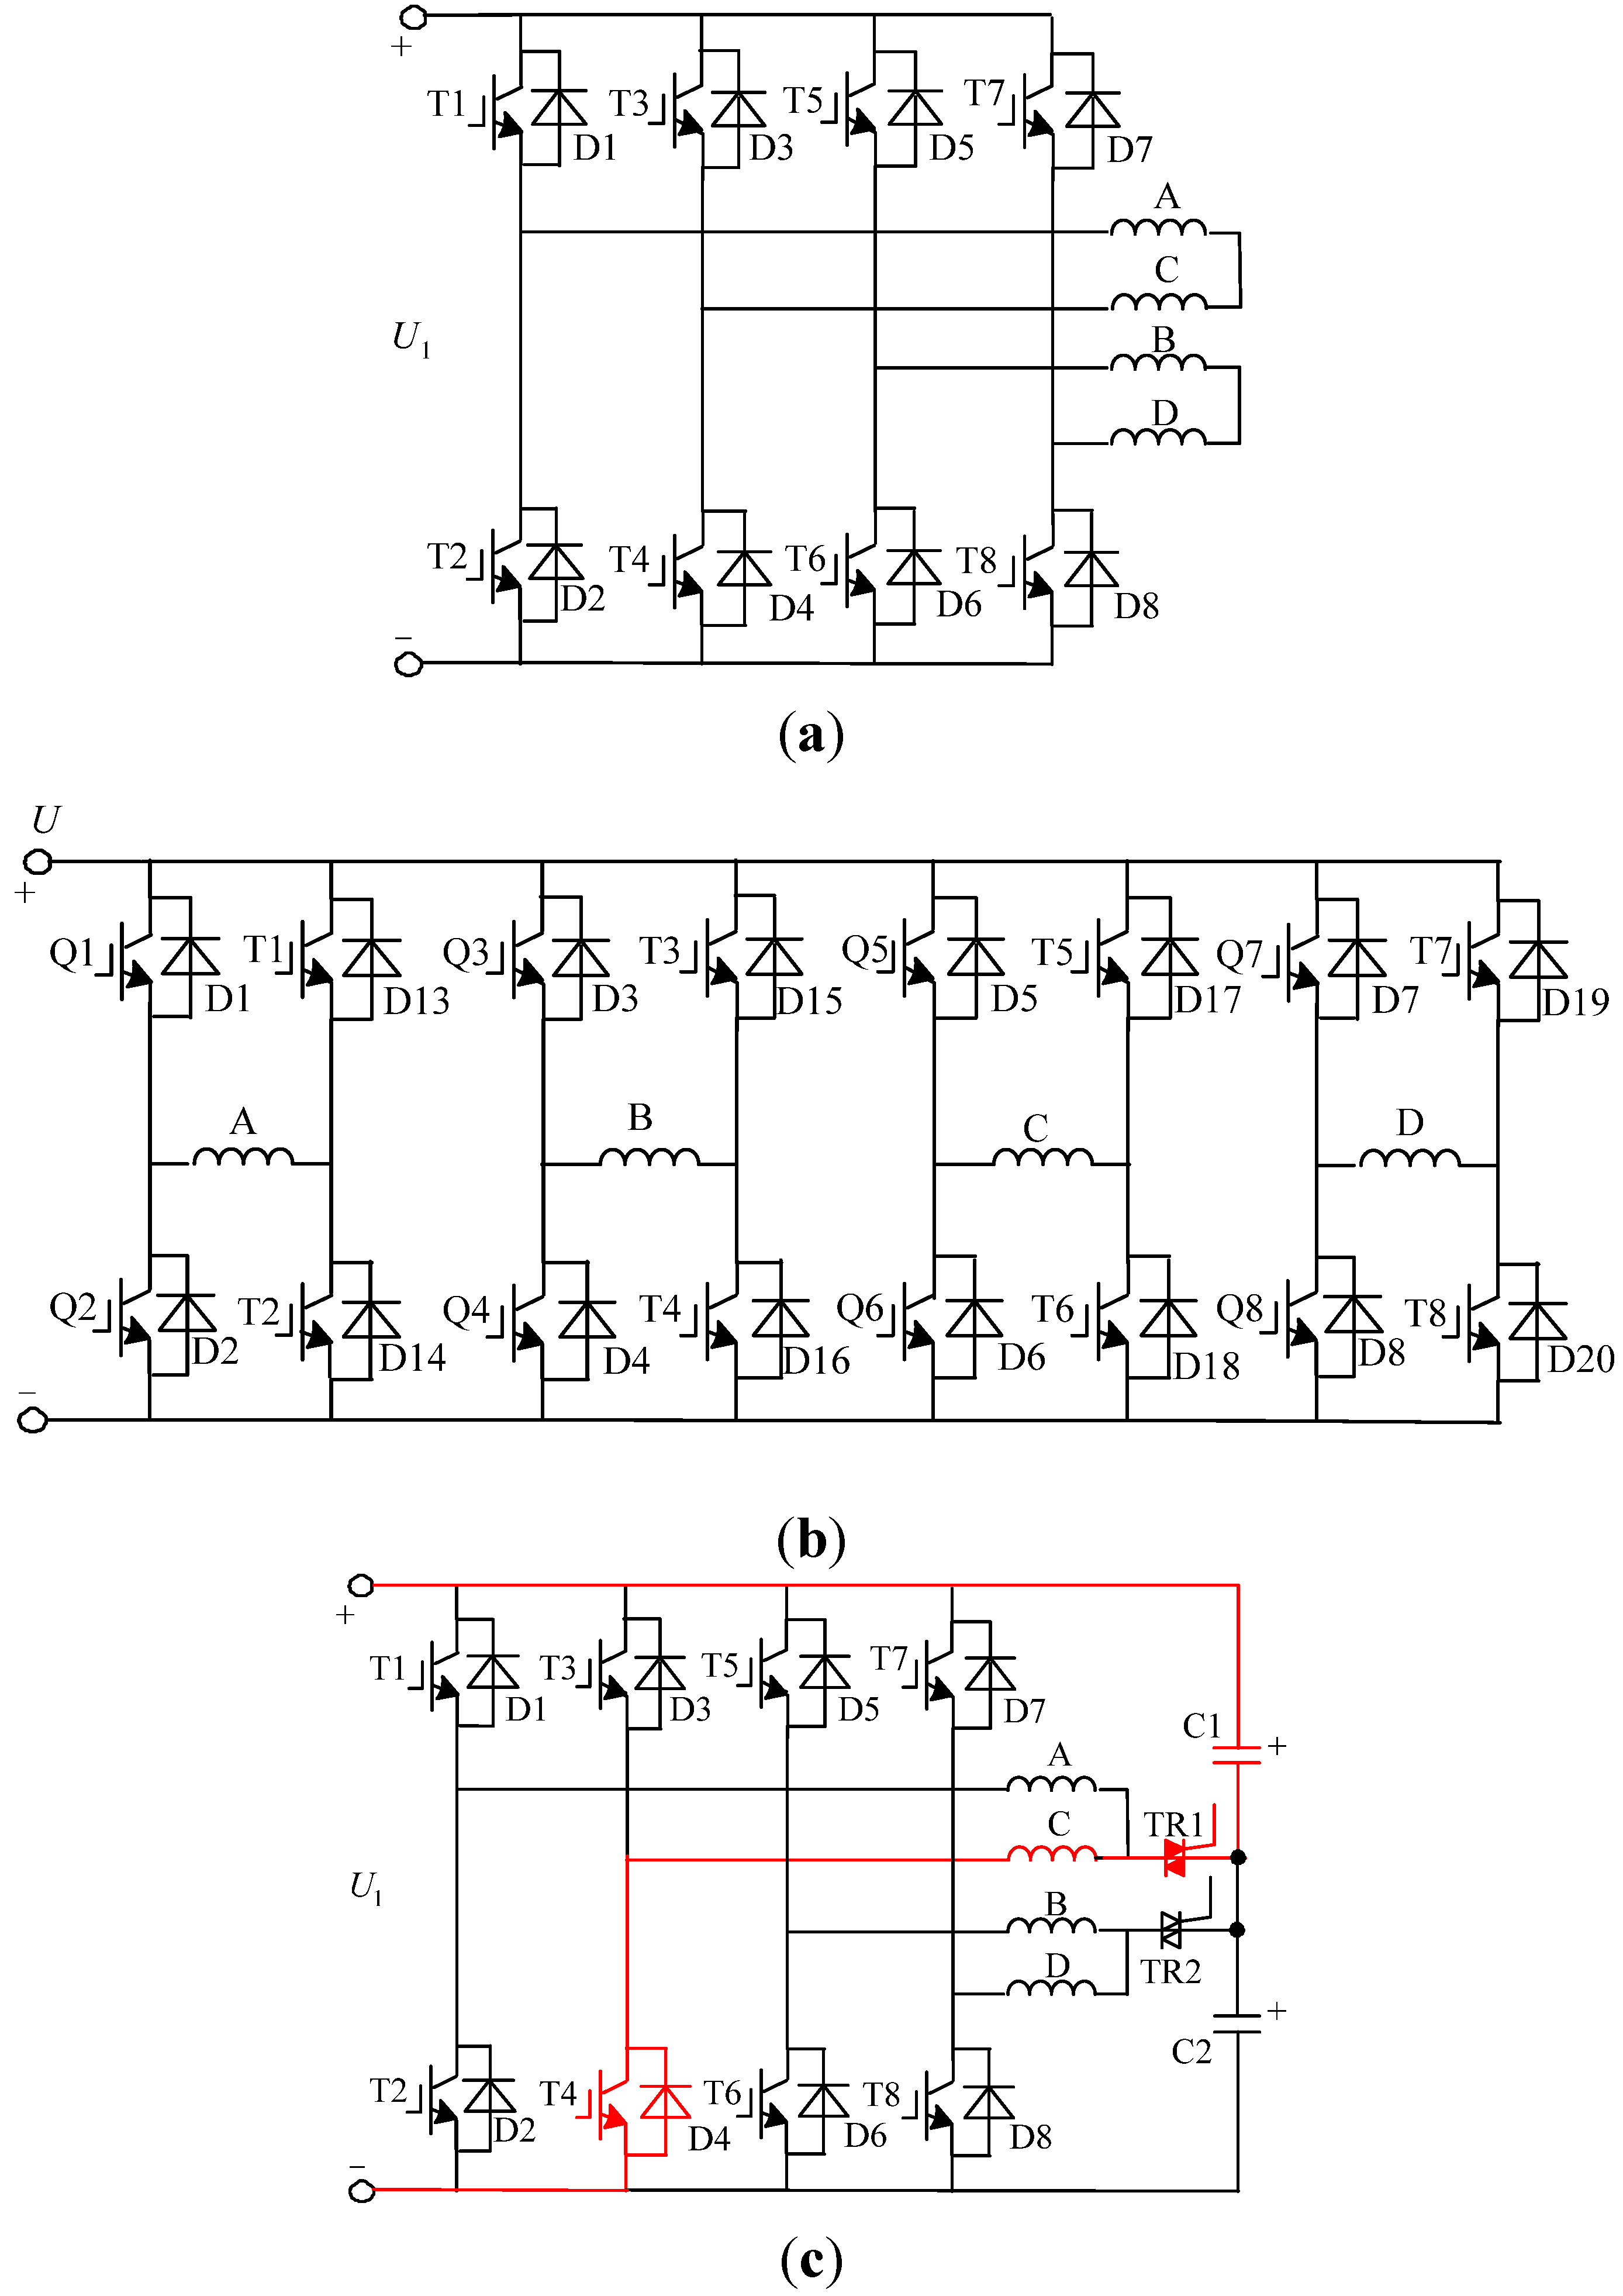 Energies Free Full Text Comparative Study Of A Fault Tolerant Circuit Diagram Phase Failure 08 03640 G010 1024